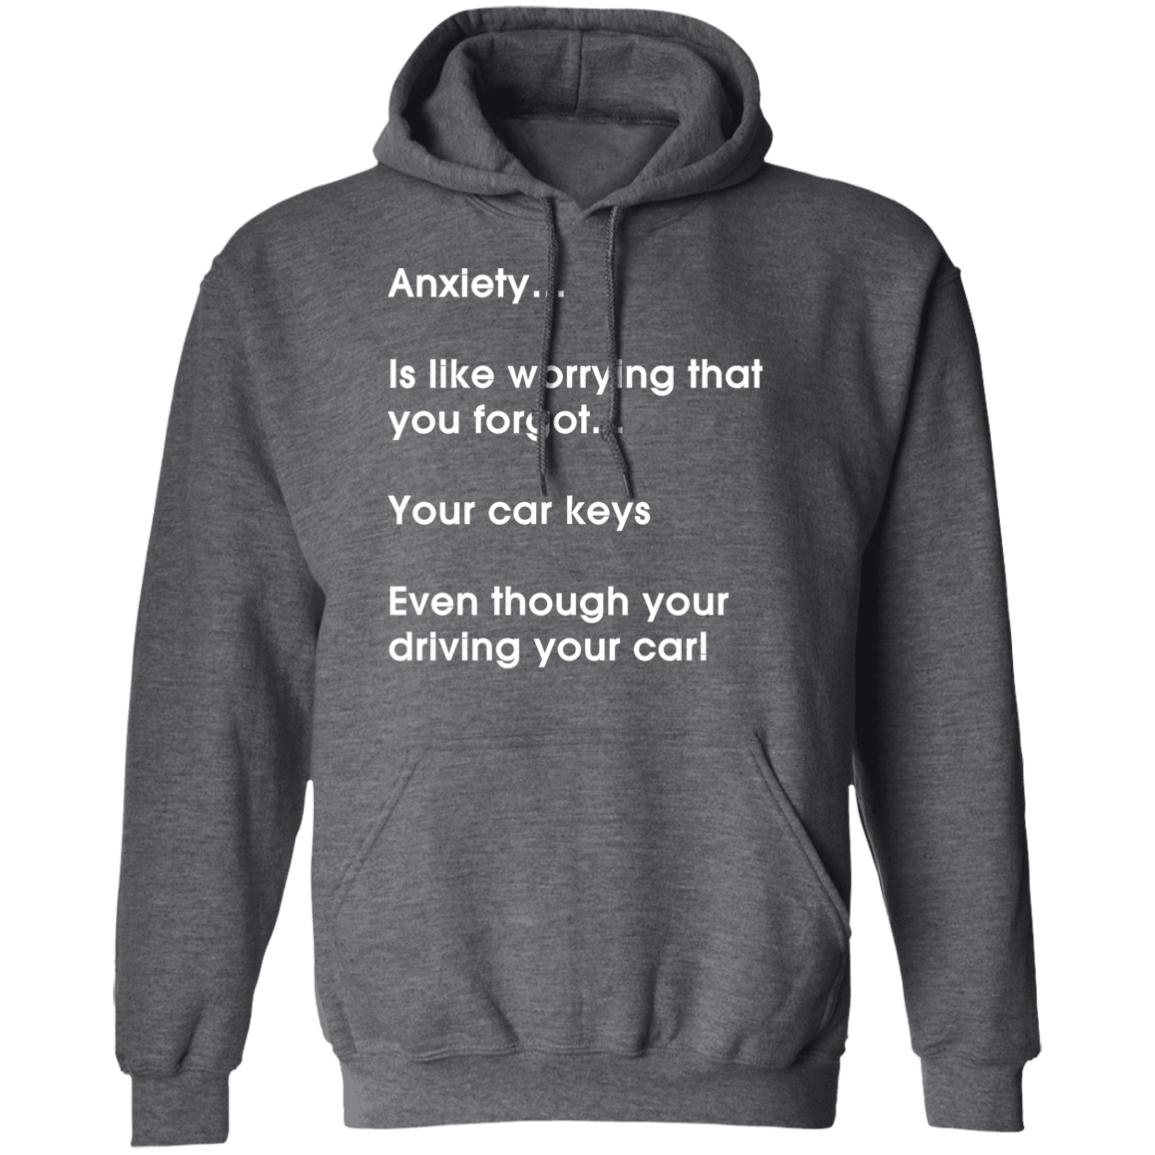 Anxiety…CAR KEYS Hoodie